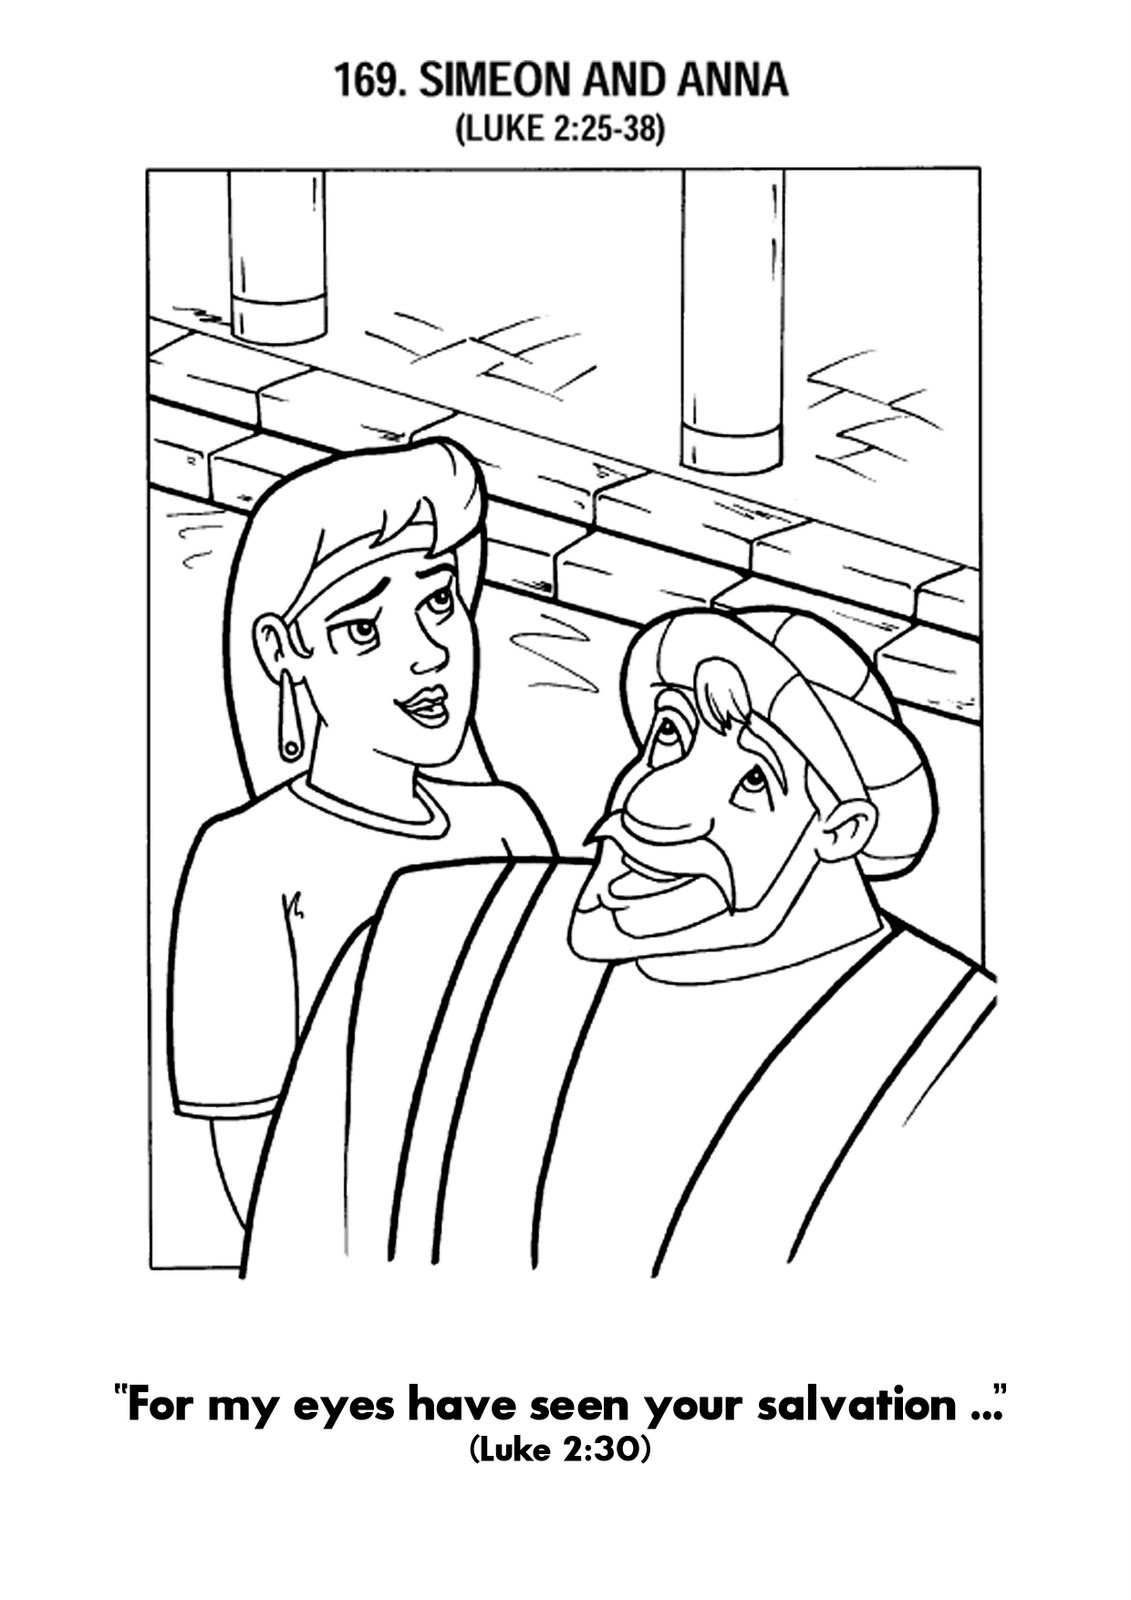 simeon and anna coloring pages - photo#15